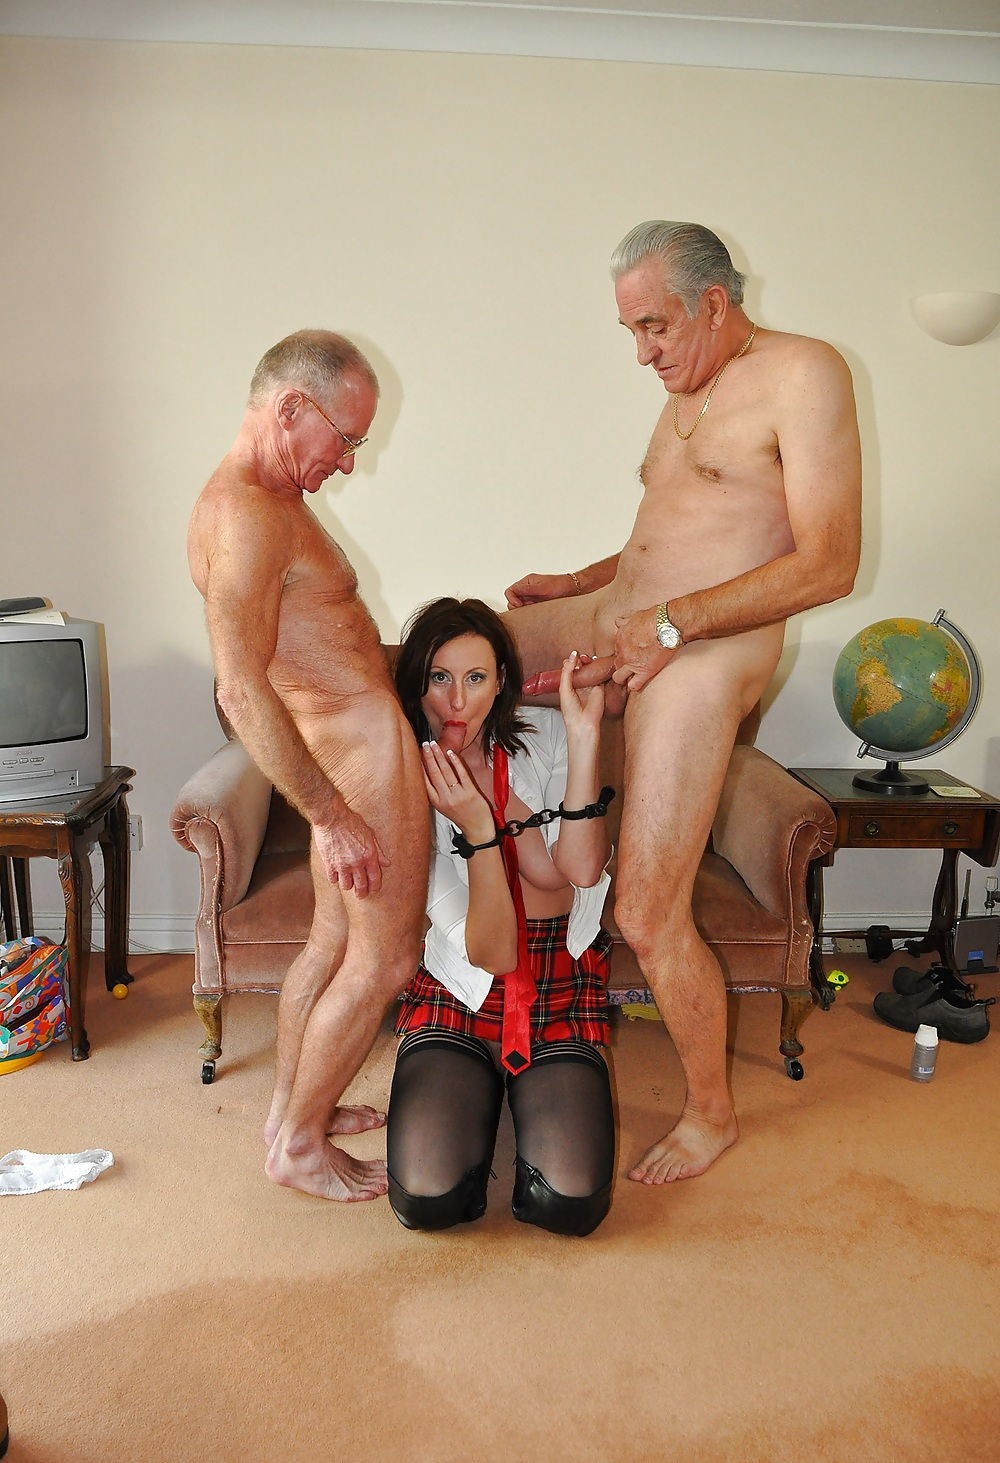 xxx men girl old